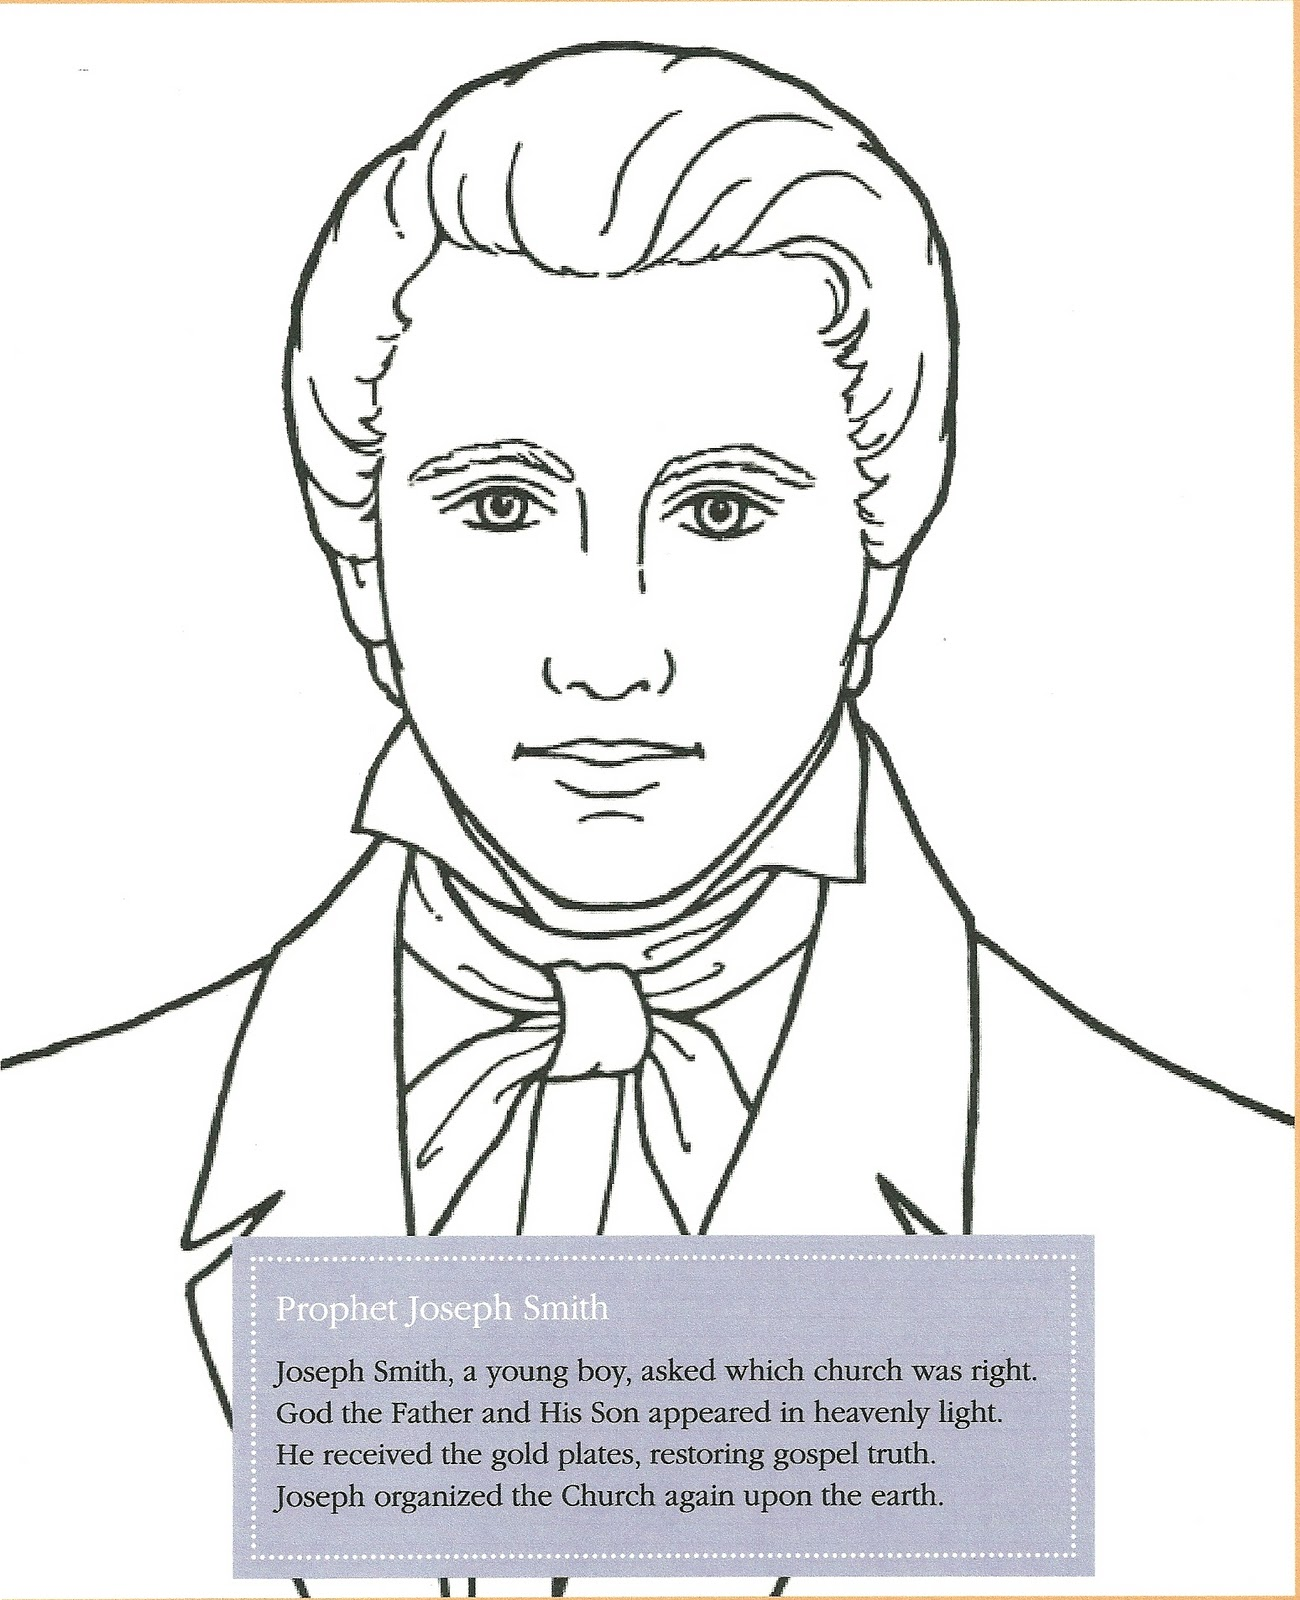 Free thomas s monson coloring pages for President monson coloring page